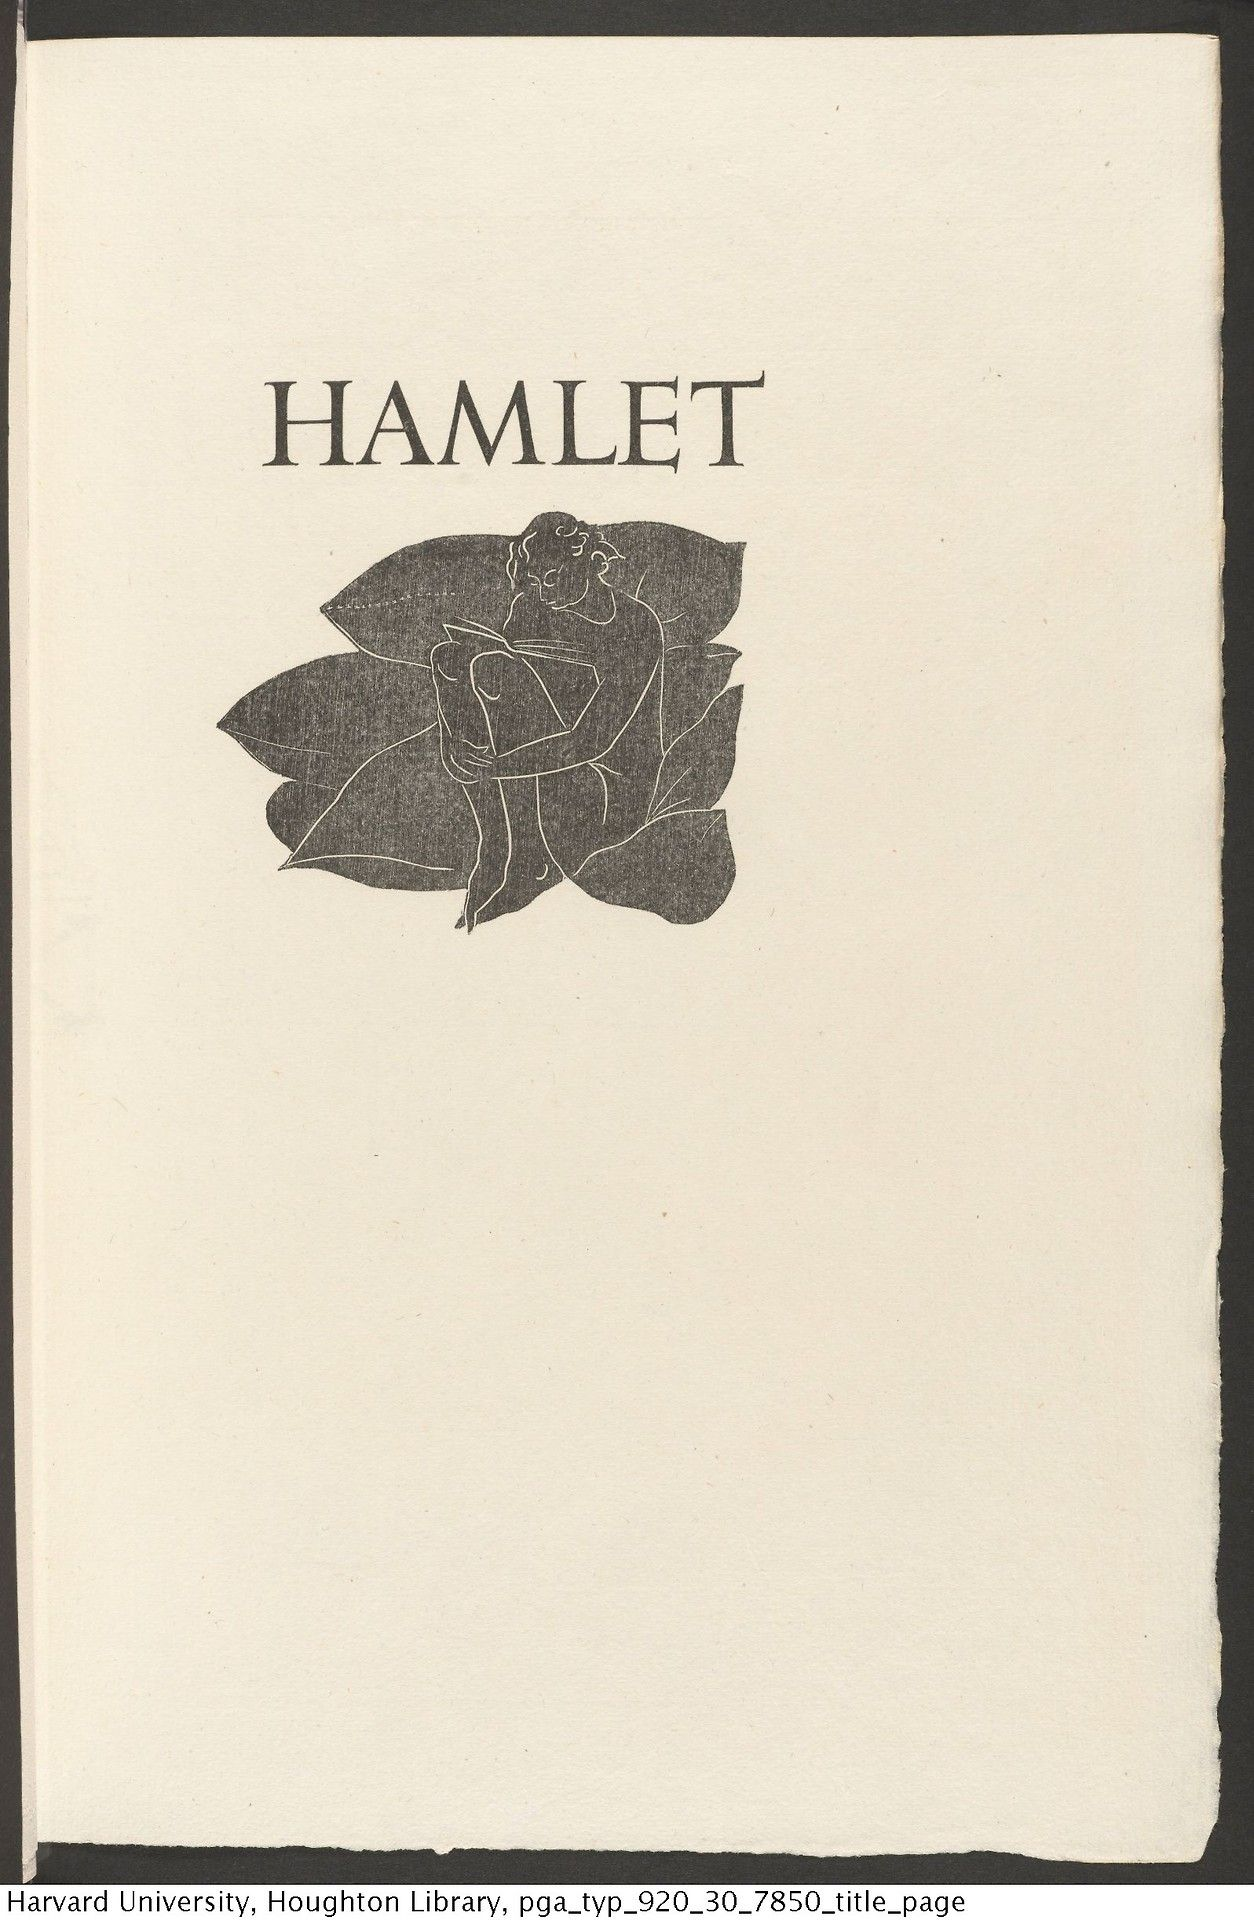 Shakespeare william 1564 1616 the tragedie of hamlet prince of shakespeare william 1564 1616 the tragedie of hamlet prince of denmarke illustrated by edward gordon craig weimar cranach press 1930 fandeluxe Image collections